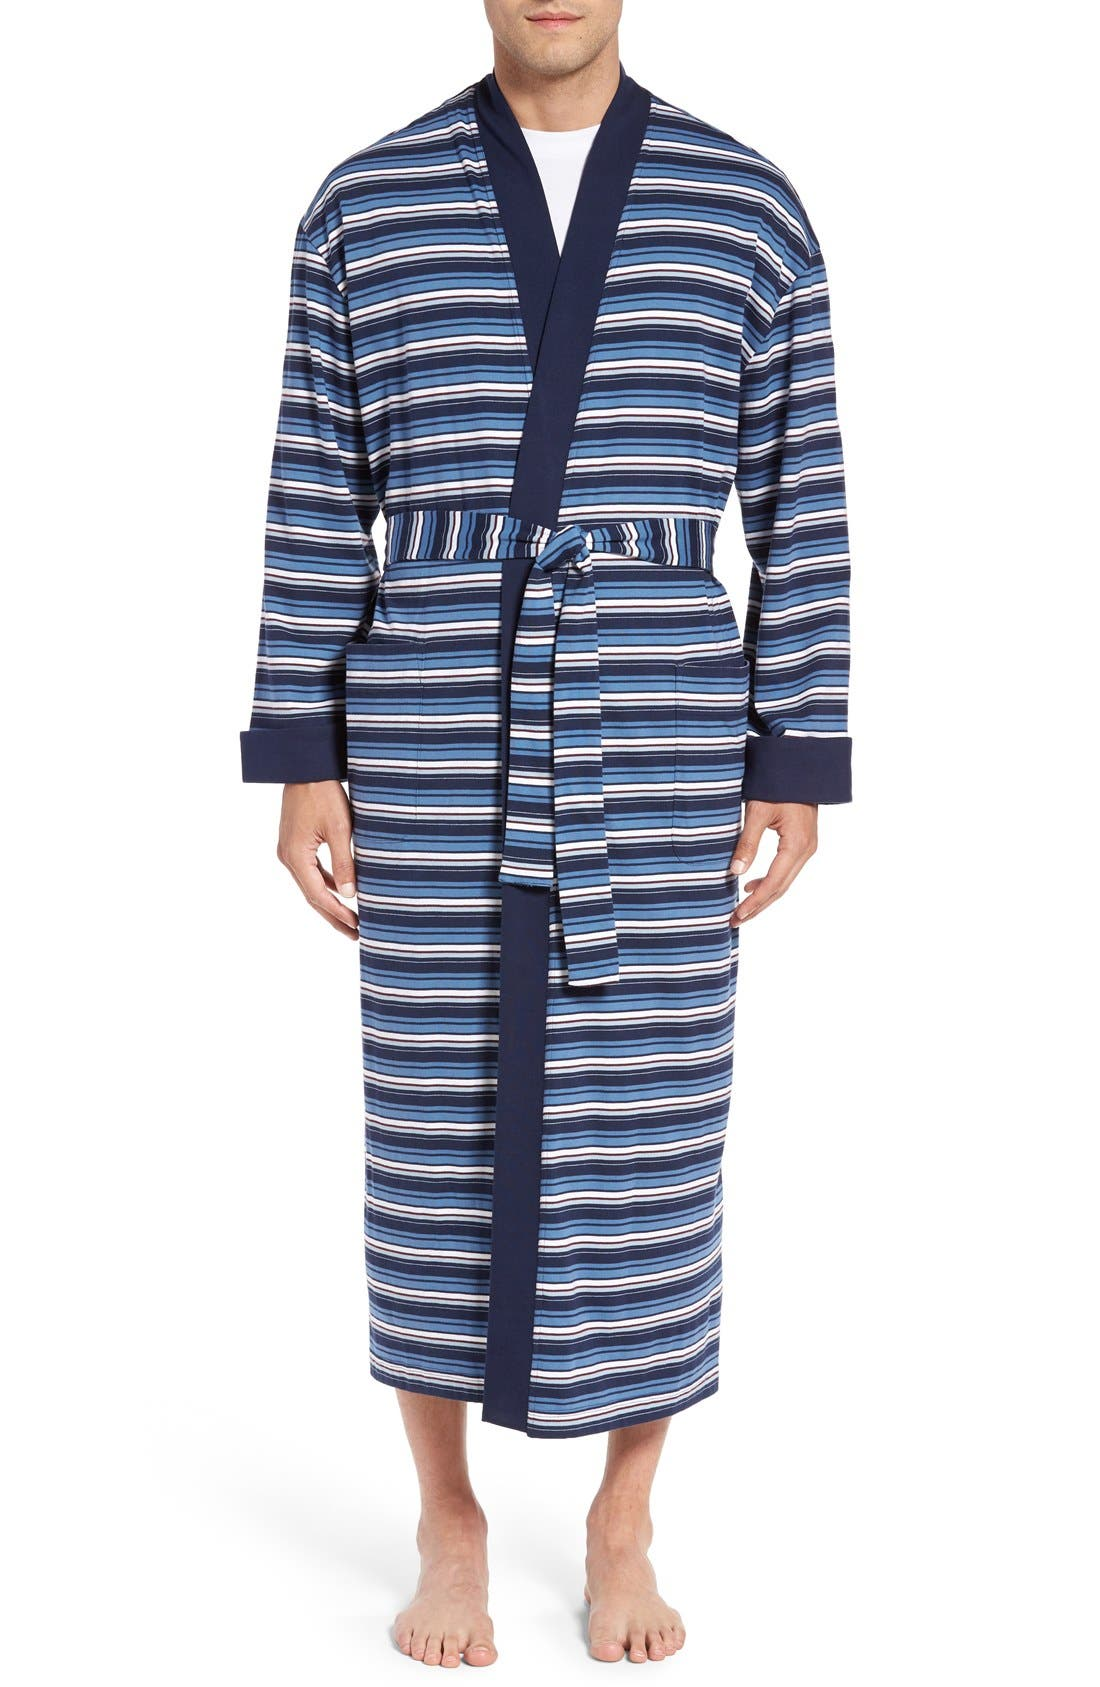 'Field House' Cotton Robe,                             Main thumbnail 1, color,                             Navy/ Burgundy Stripe